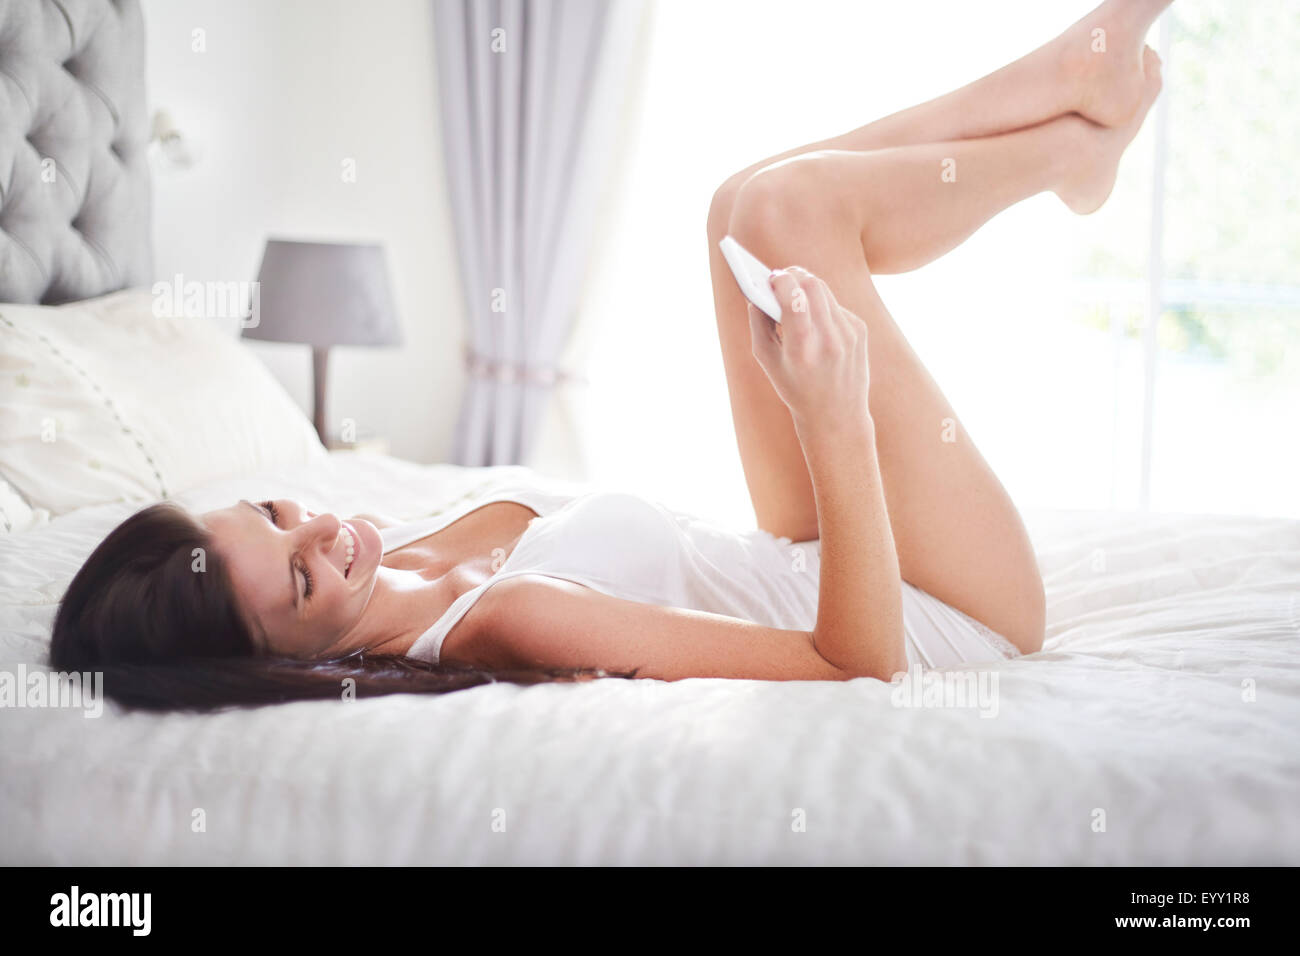 woman laying on bed texting with cell phone stock photo, royalty